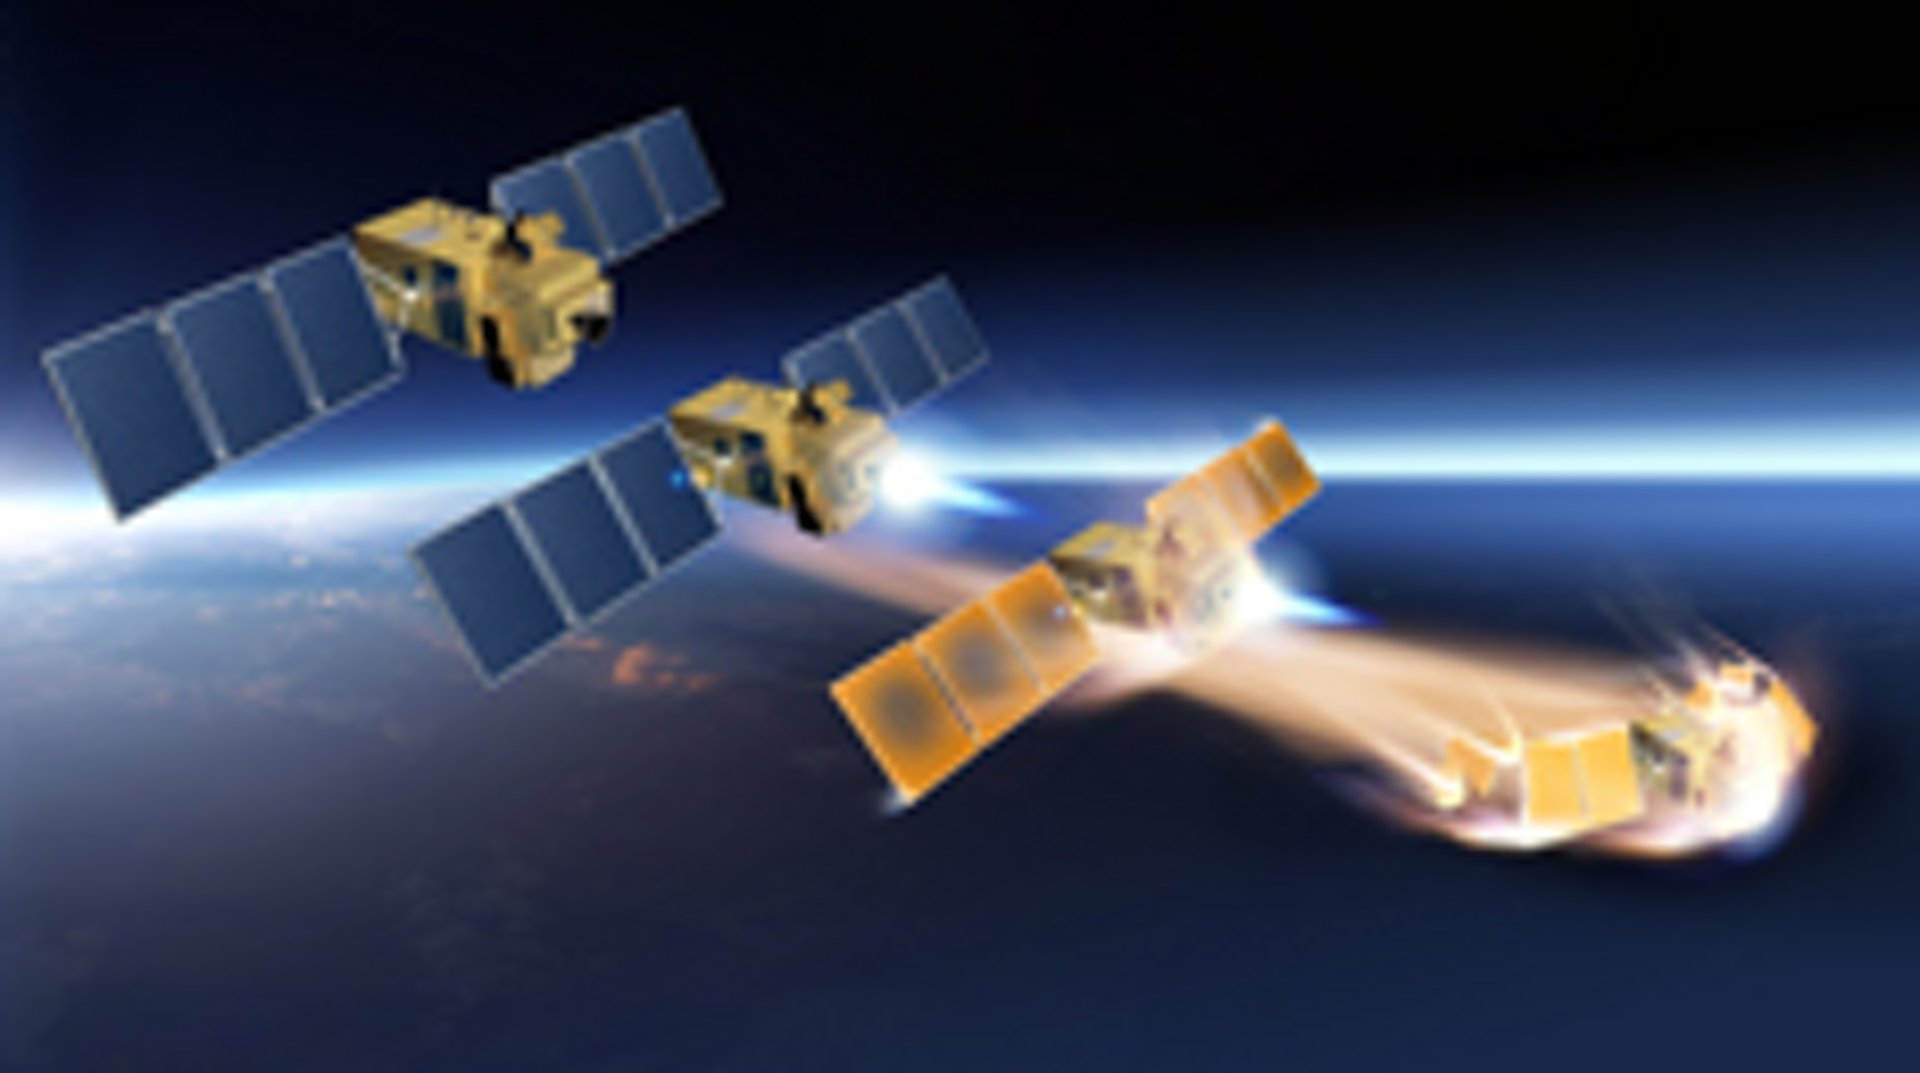 TeSeR, next EU project to clean up space